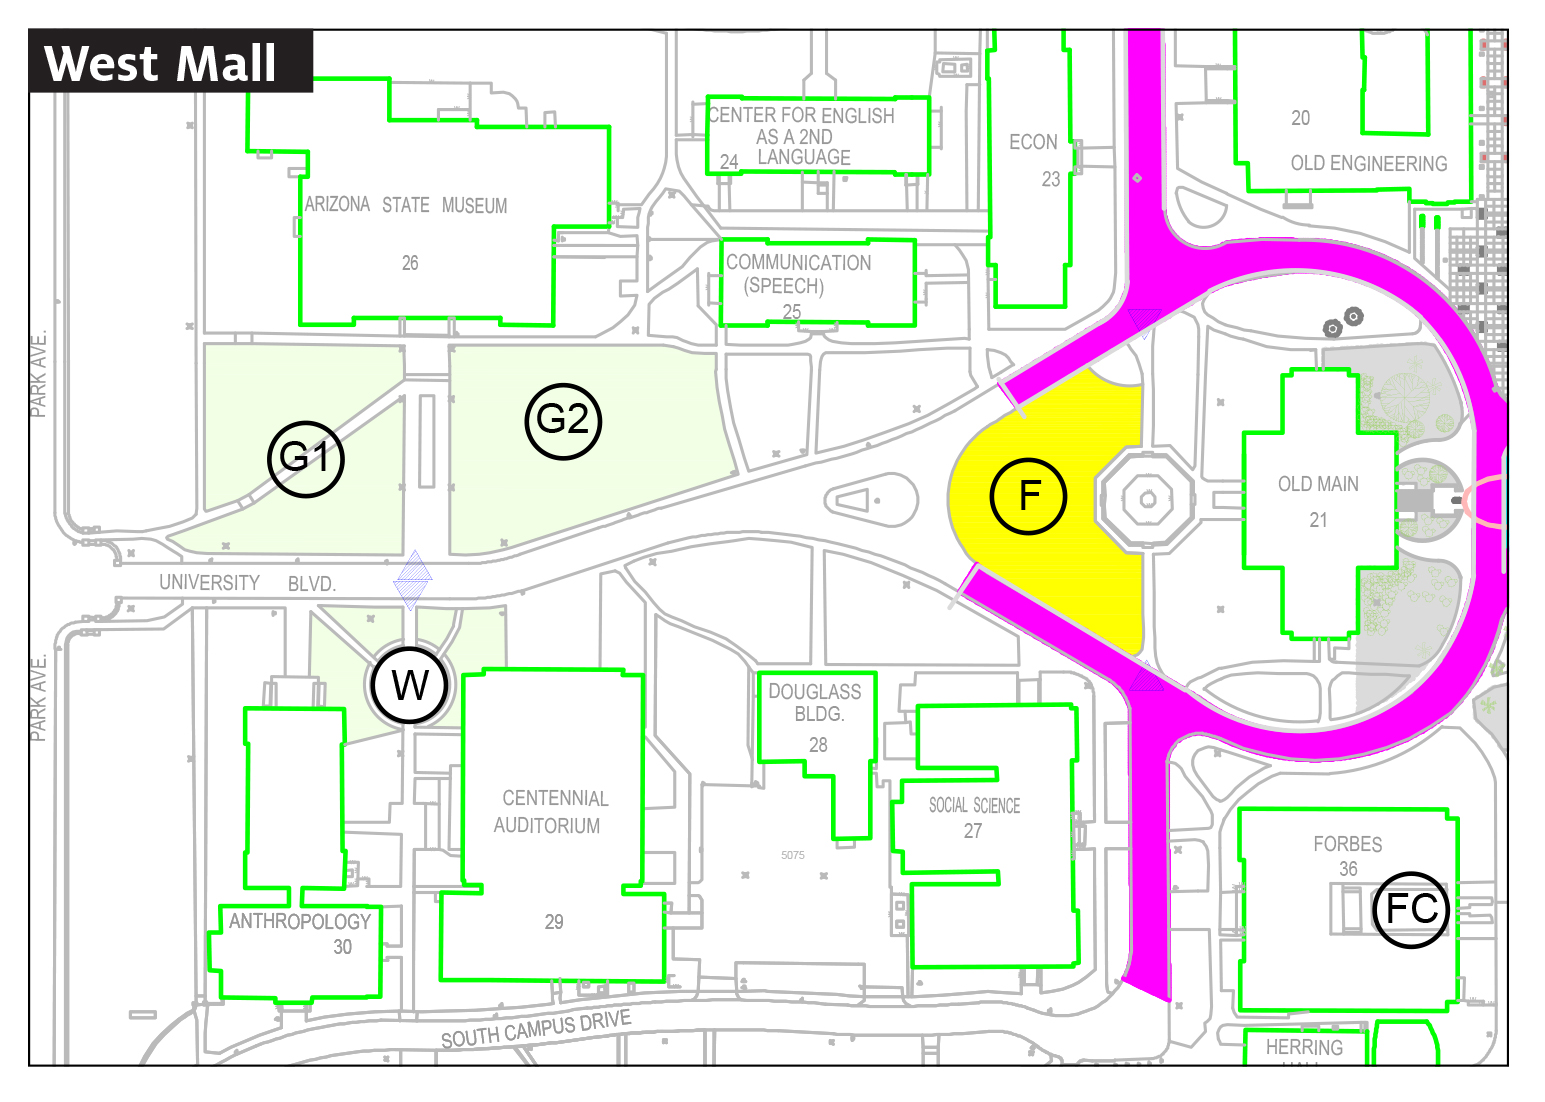 west mall map